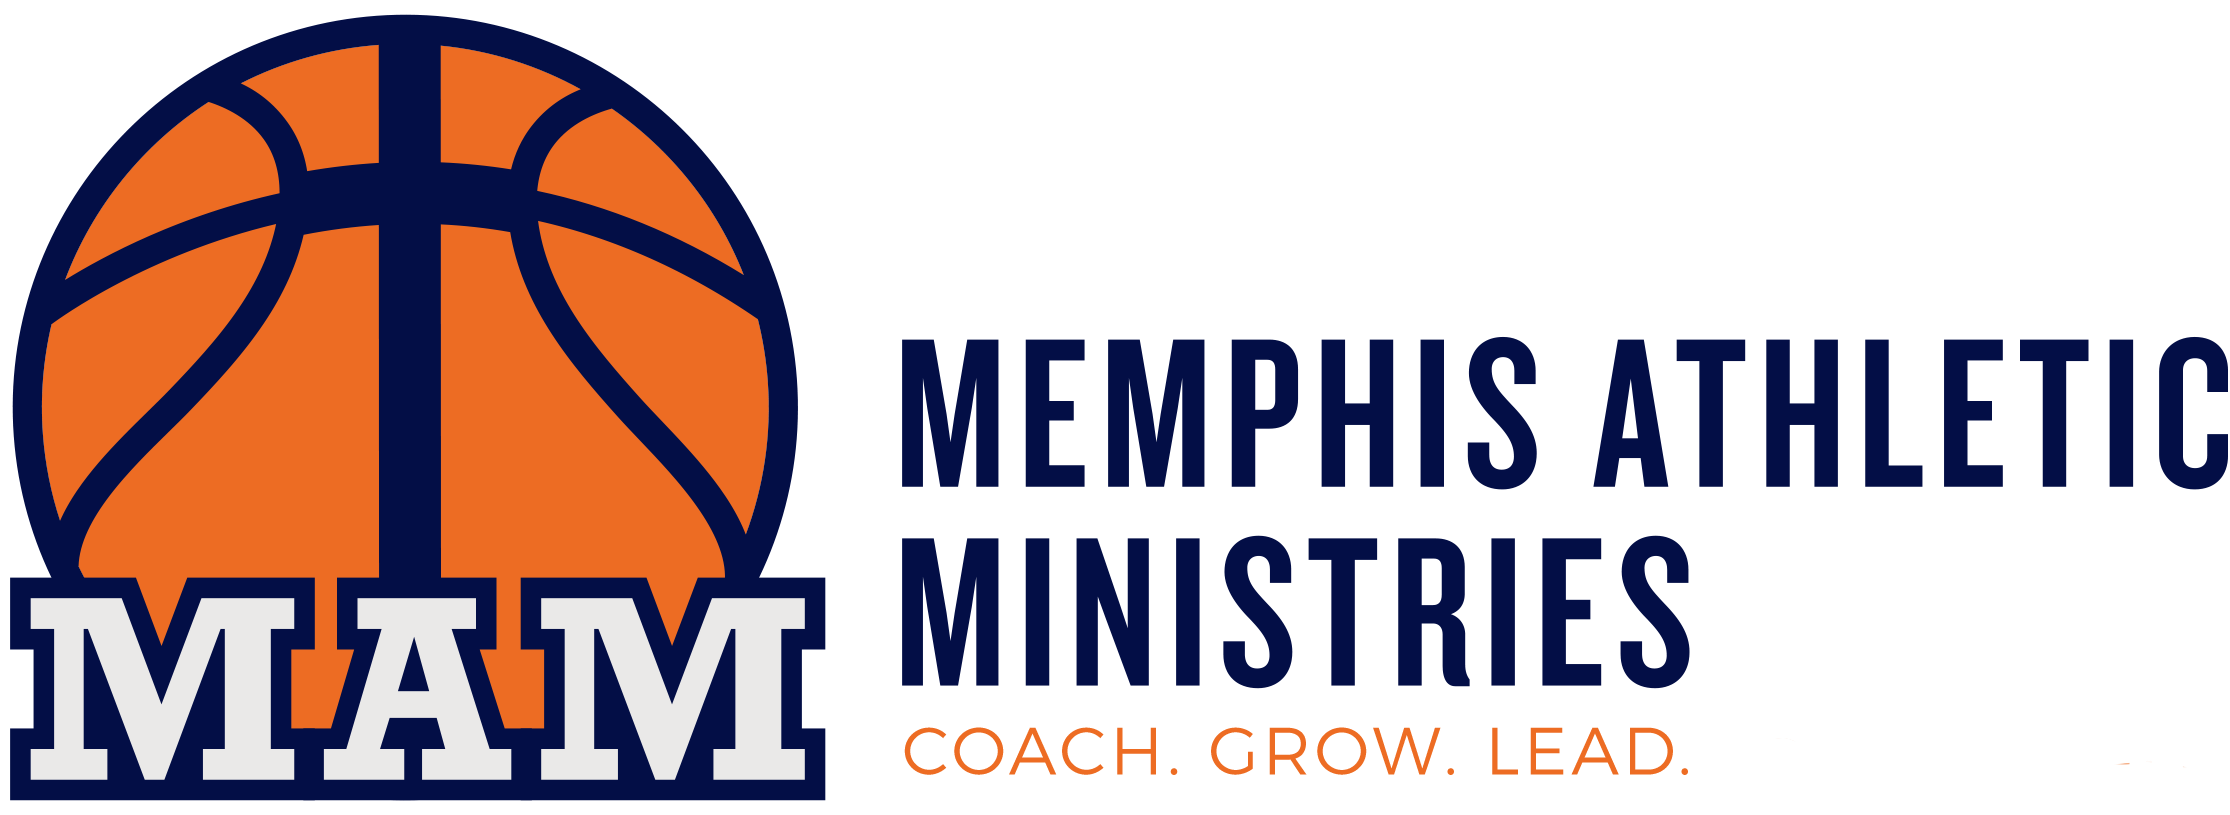 Memphis Athletic Ministries